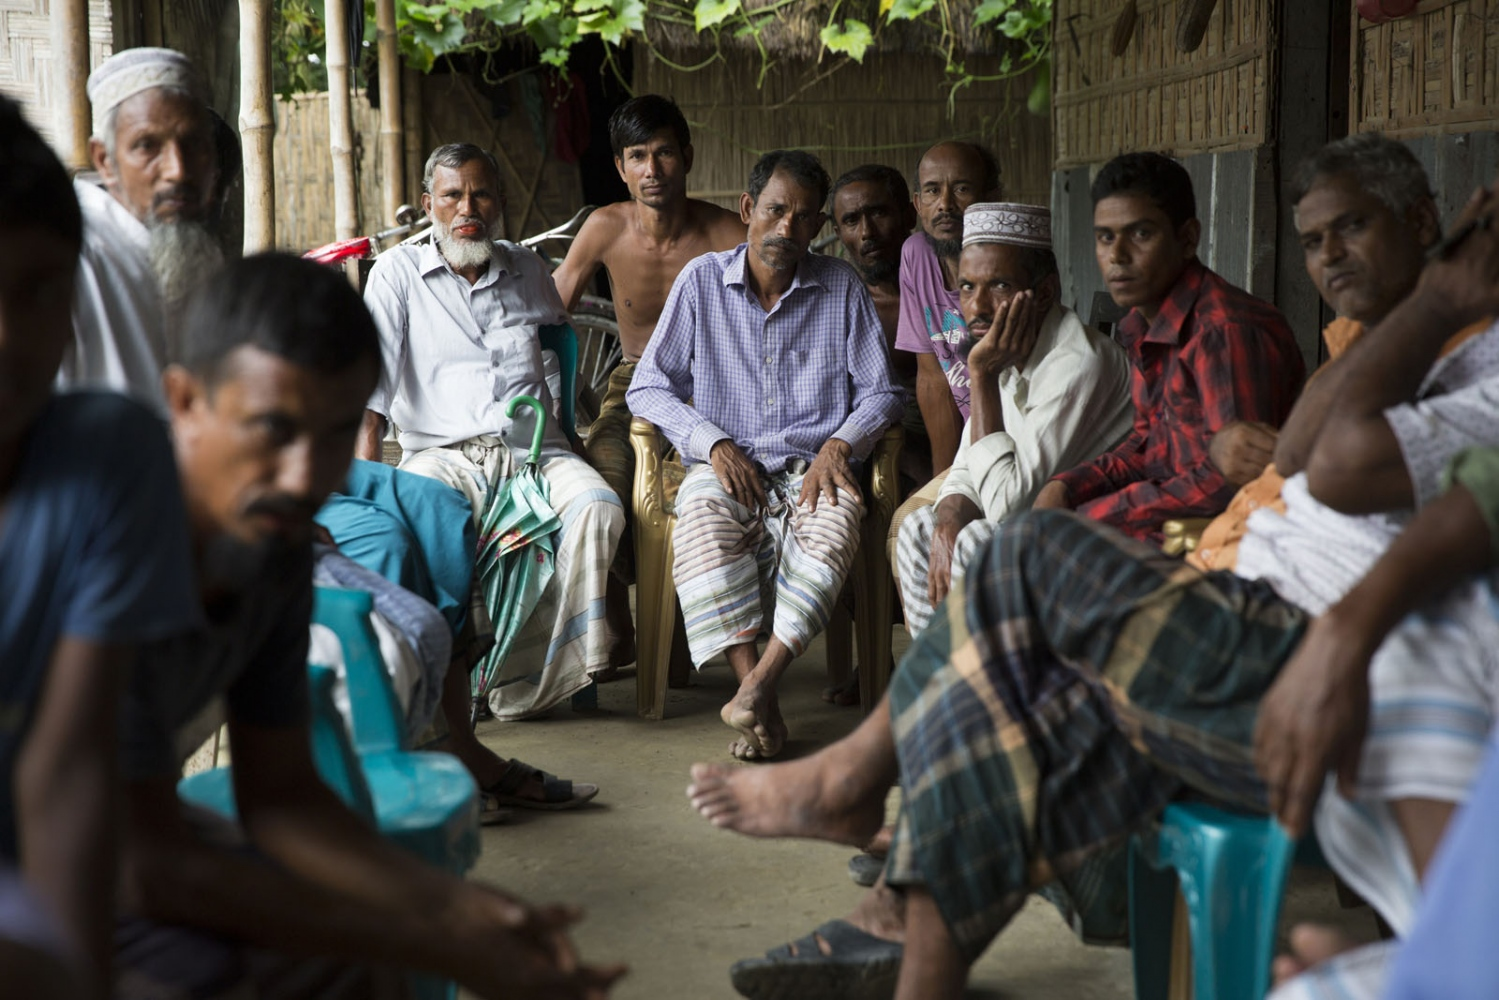 At Borezerdanga village in one of the enclaves near the town of Debiganj a meeting is being held between village elders and men known as 'peace keepers'. Here to discuss the issue of an underage marriage, until a few weeks ago when the enclaves were disbanded the Bangladeshi police had no jurisdiction inside the enclaves so residents relied on peace keepers to sort out problems ranging from illegal logging to land disputes.